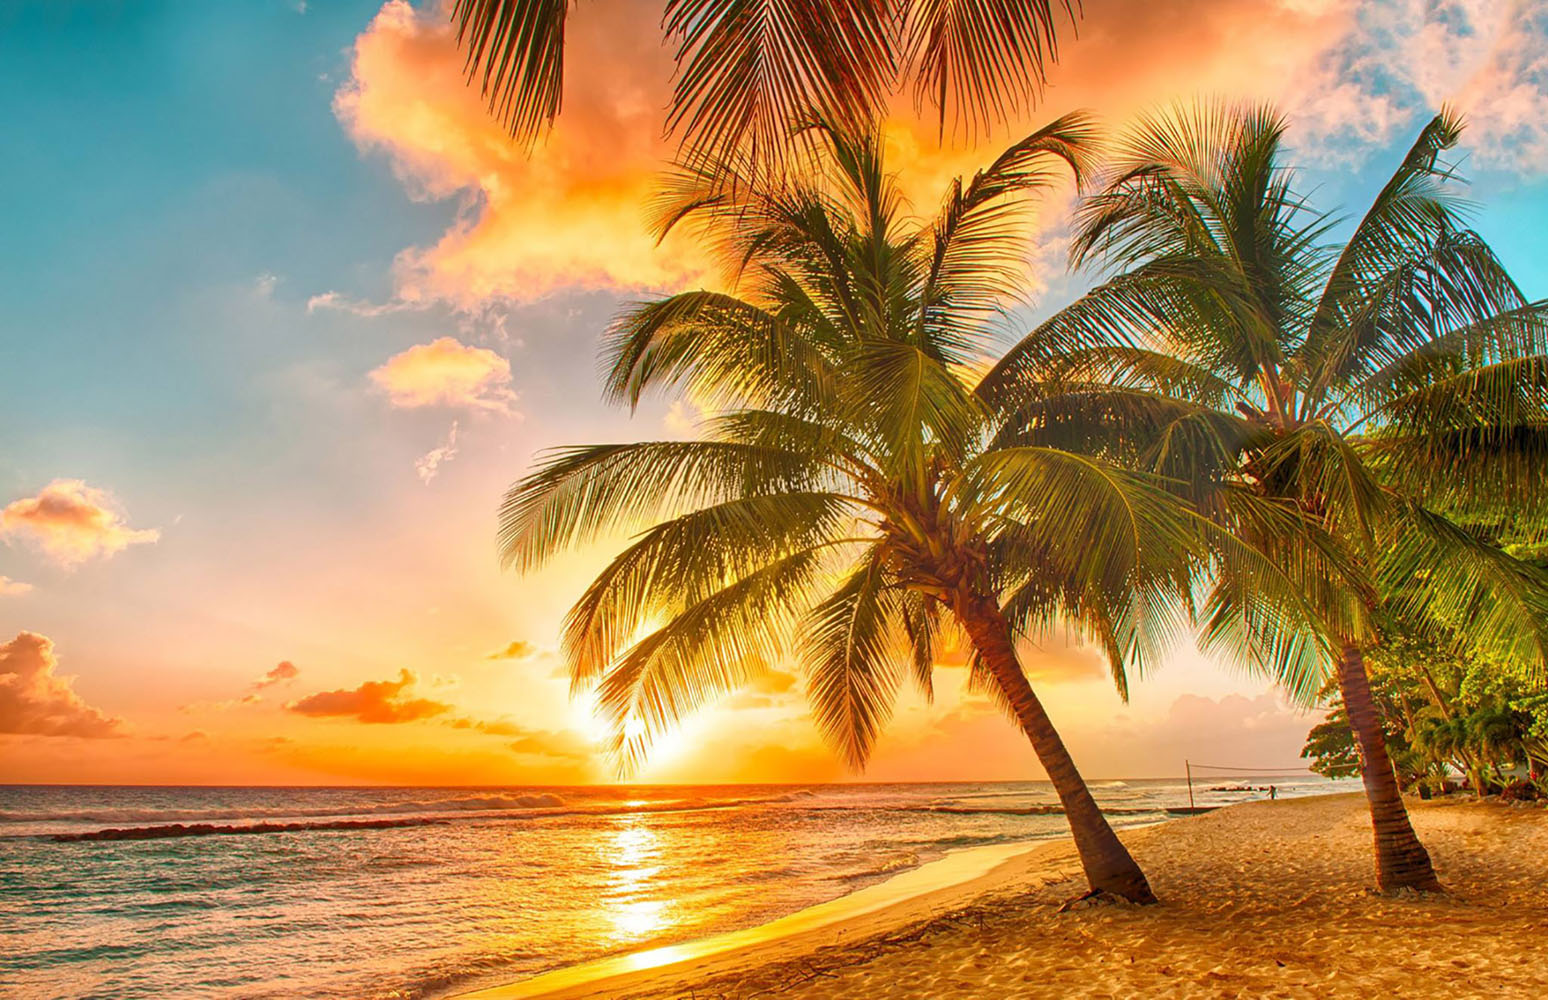 A sunset on a Caribbean beach.